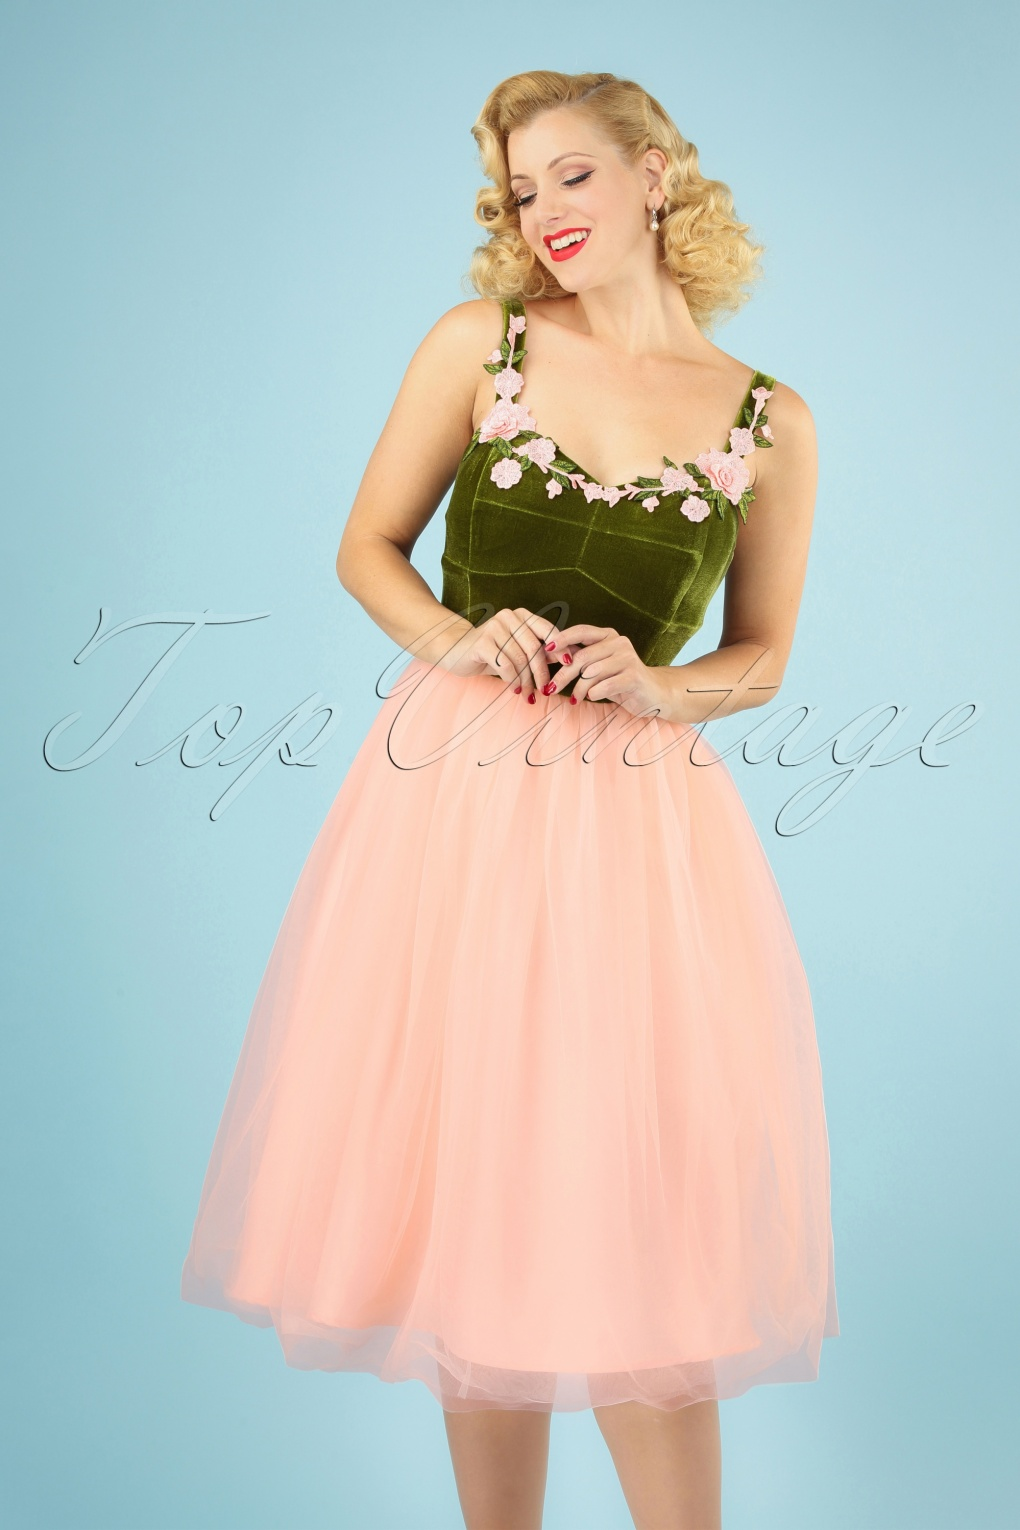 Vintage Evening Dresses and Formal Evening Gowns 50s Josie Occasion Swing Dress in Pink and Green £92.32 AT vintagedancer.com